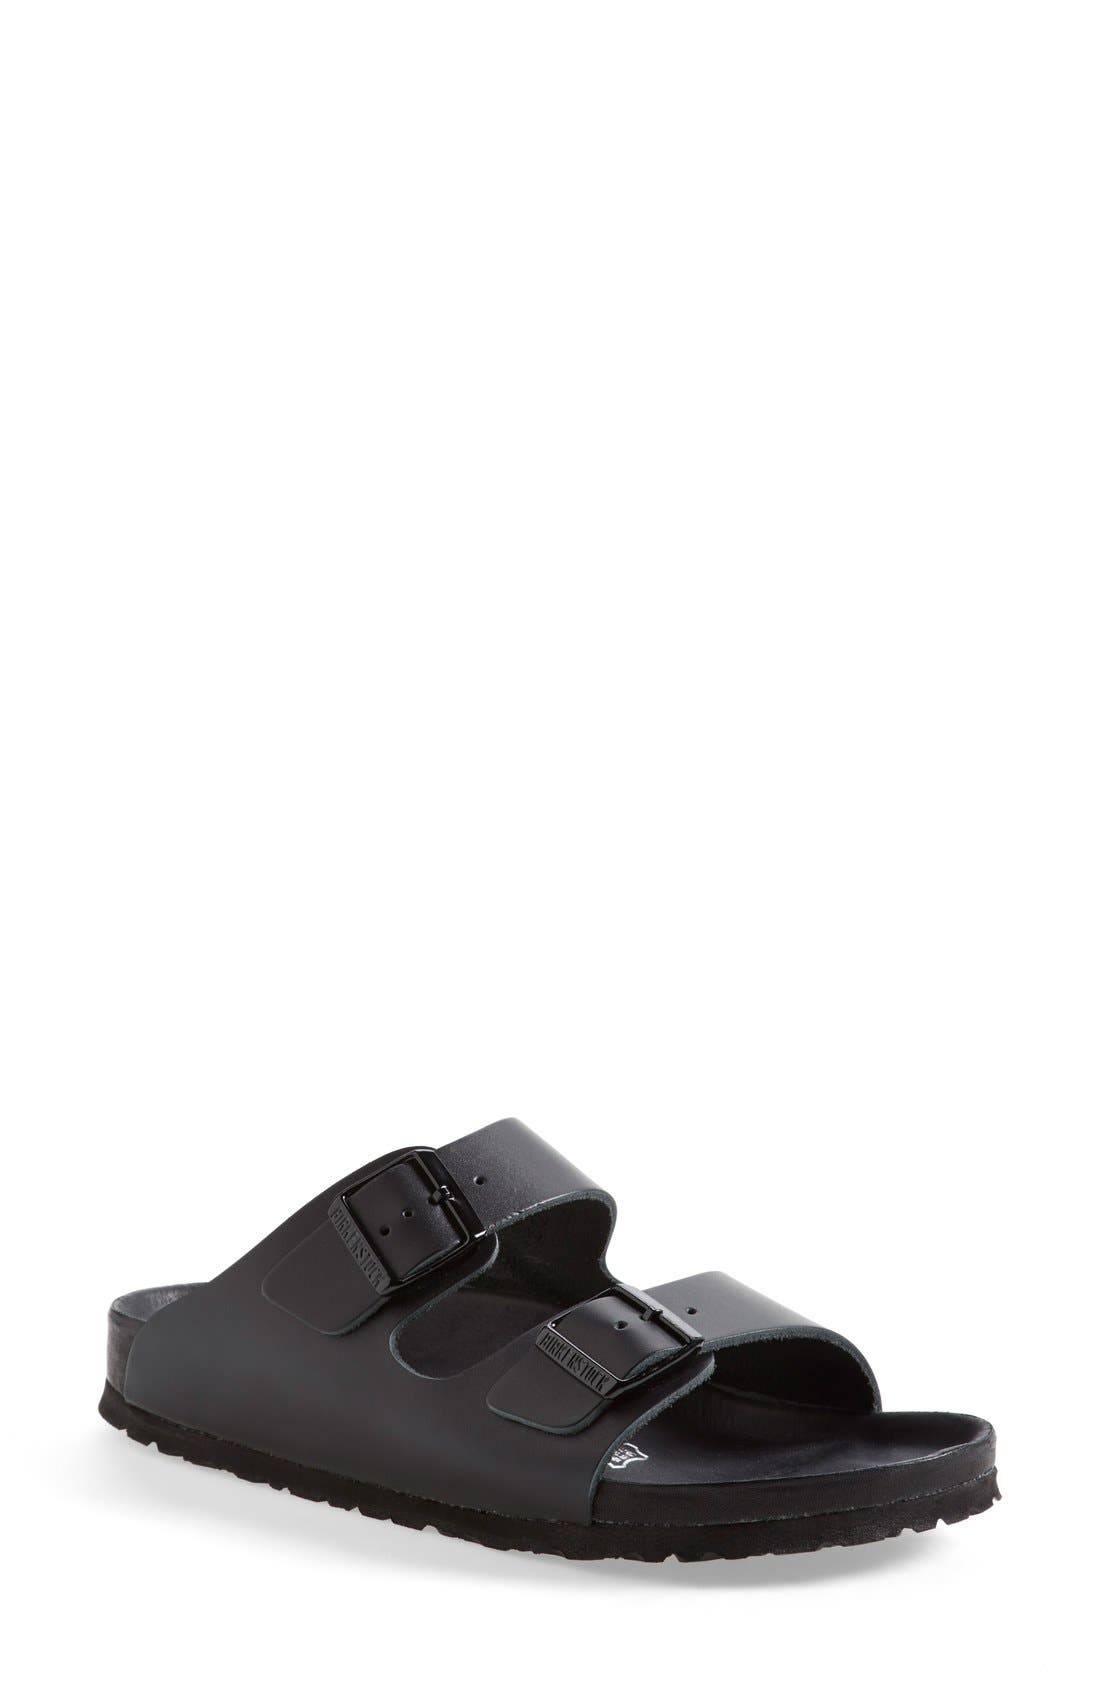 'Monterey' Leather Sandal,                         Main,                         color, Black